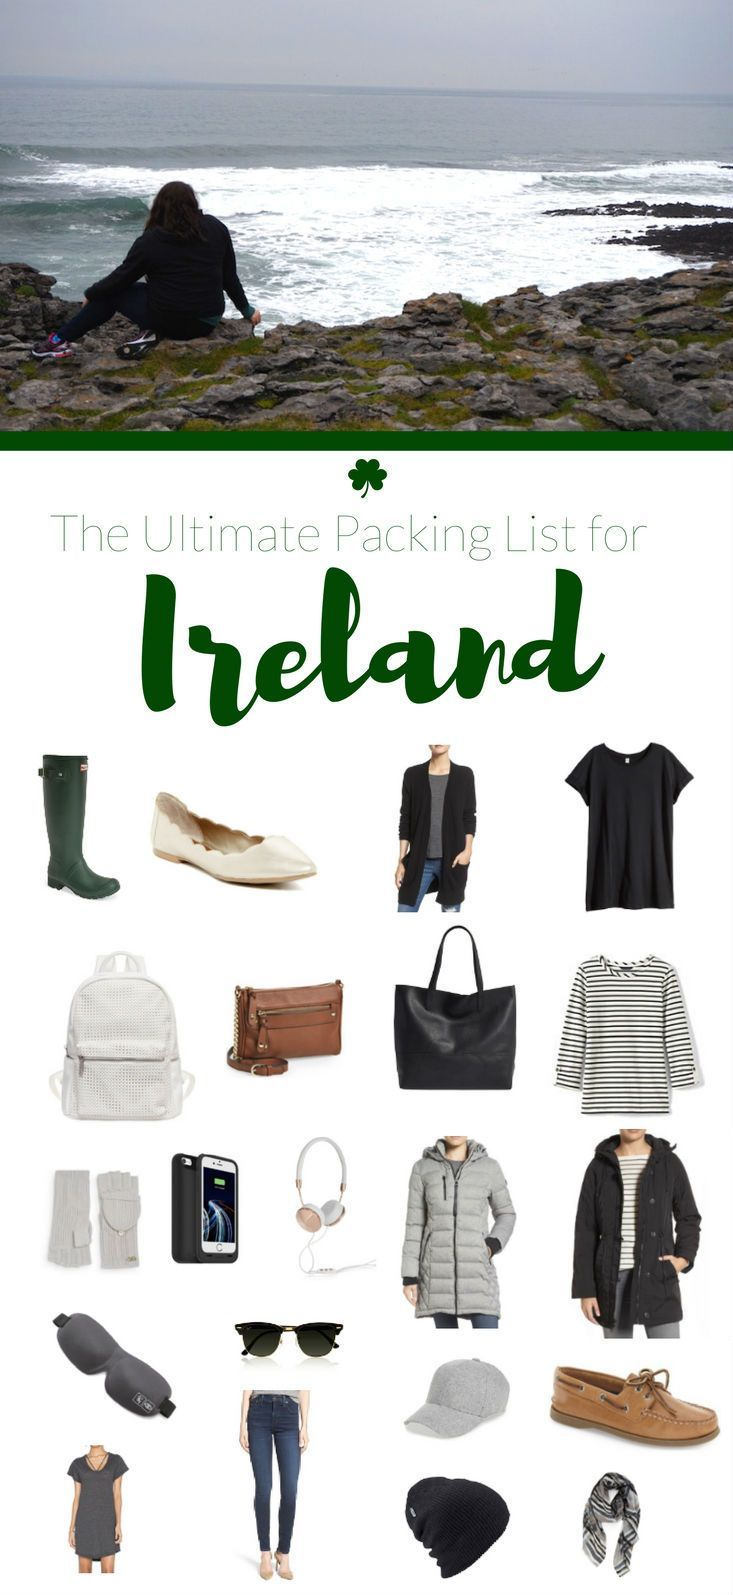 The Ultimate Packing List for Ireland! | theflyawaylife.com